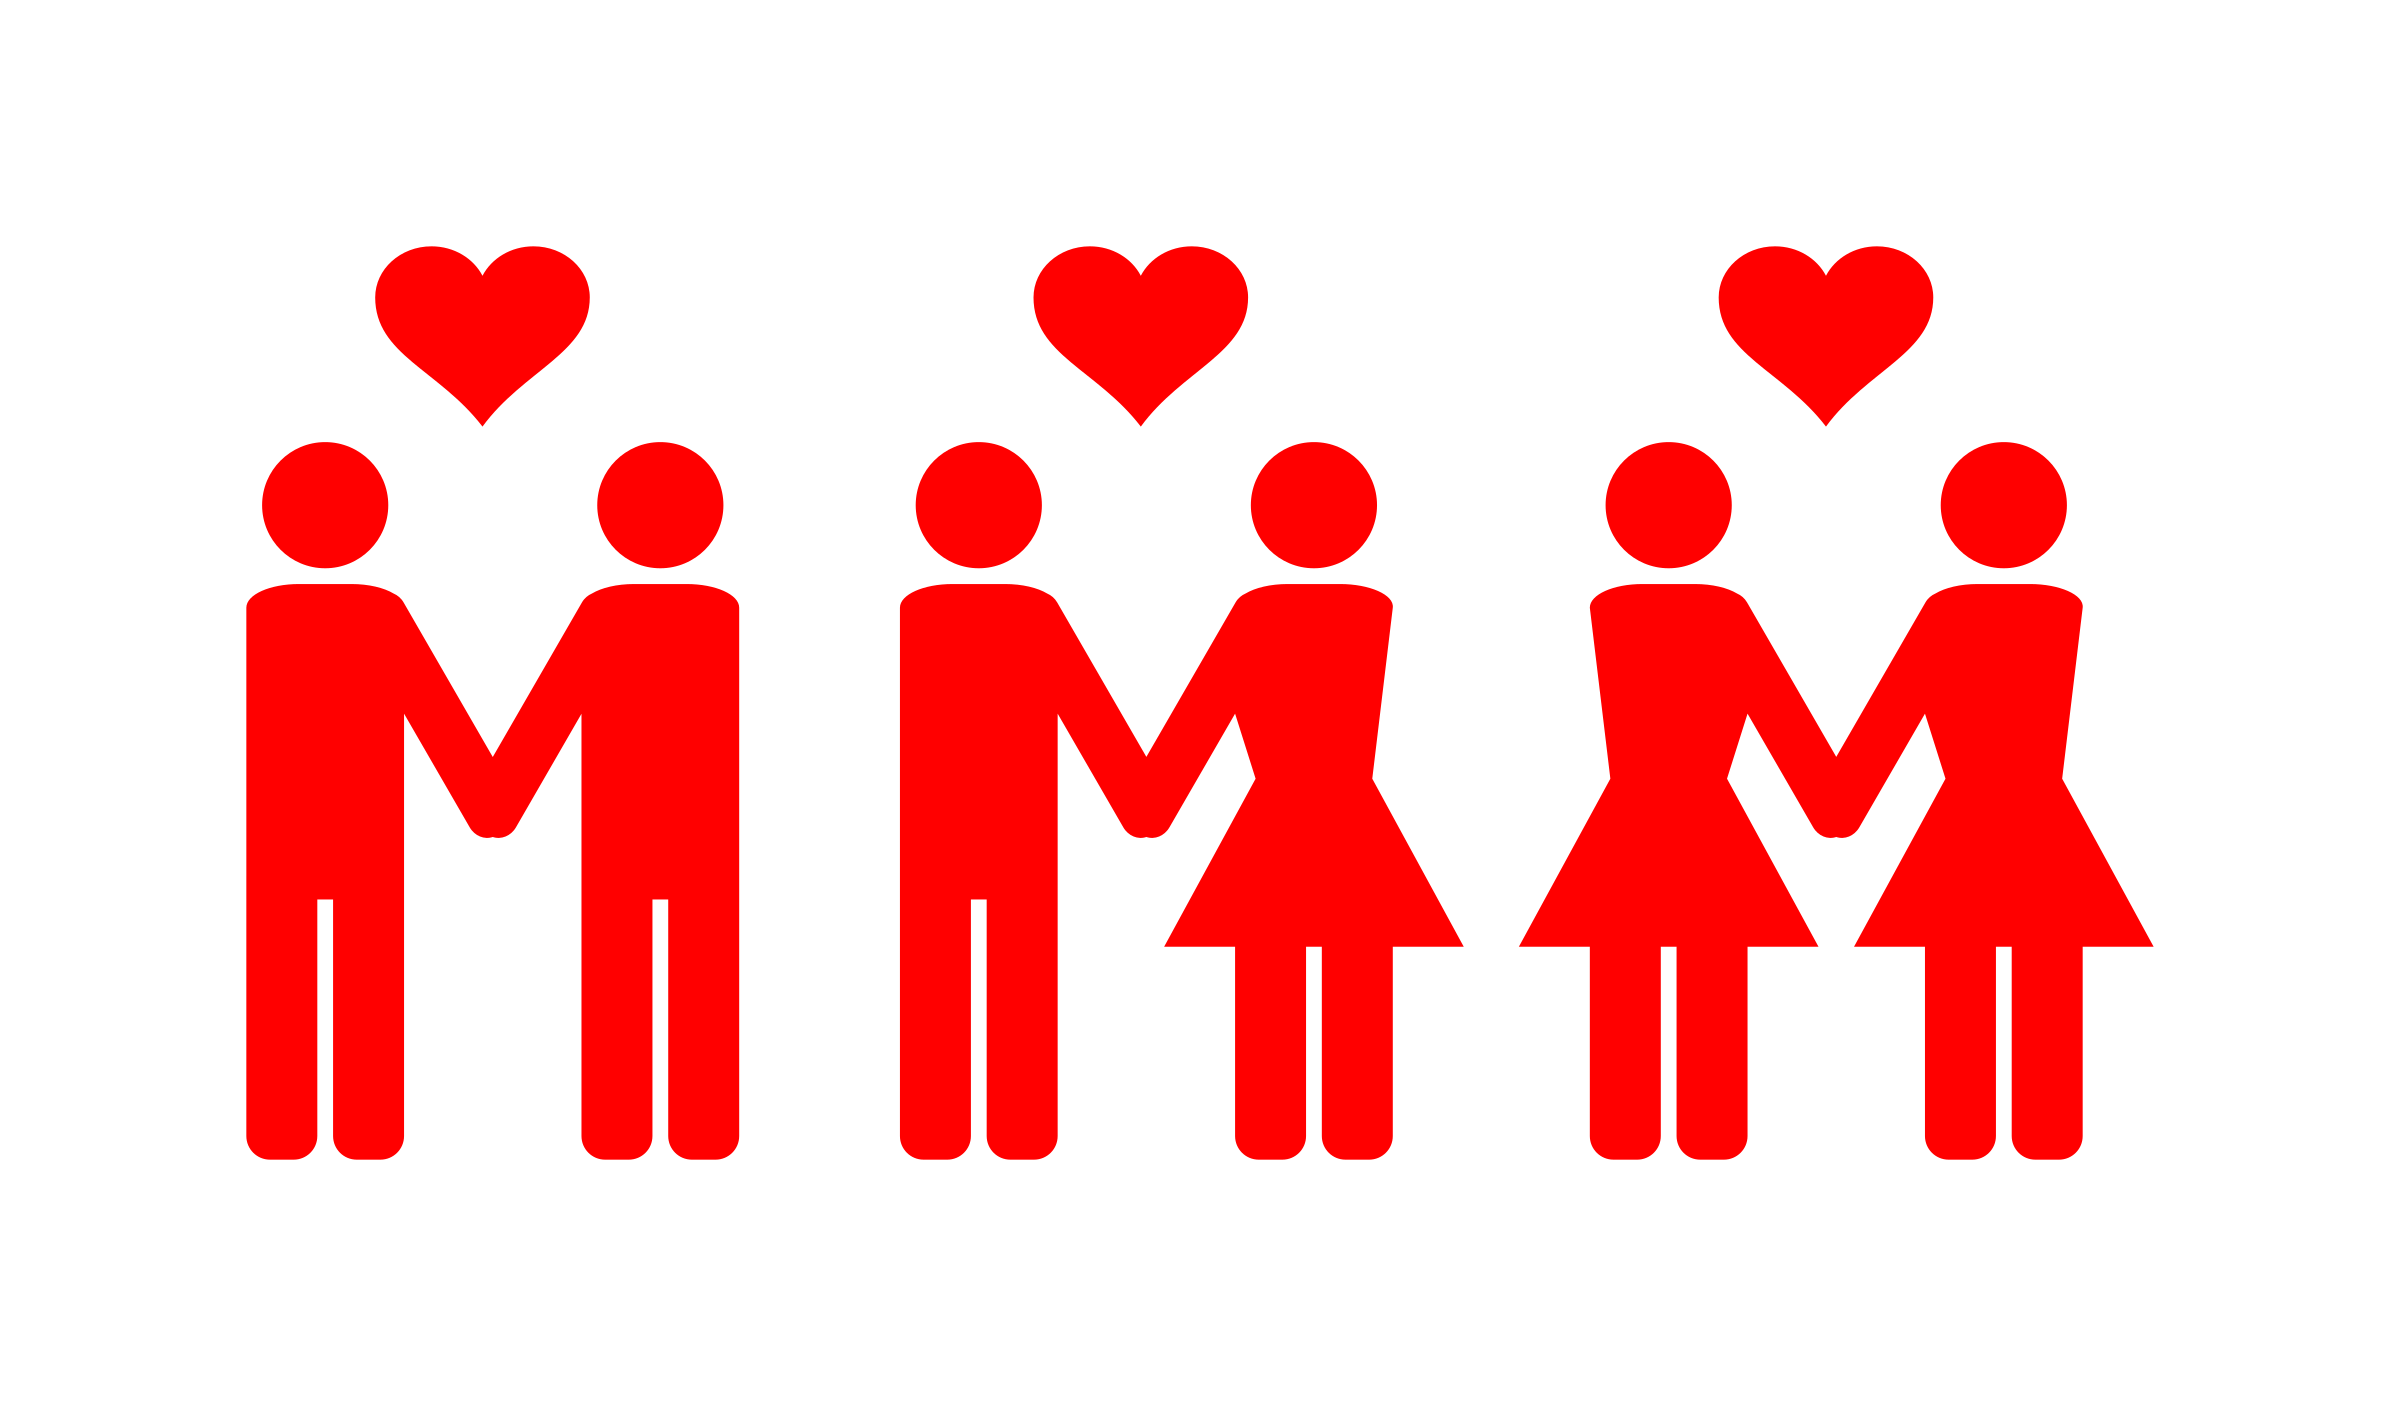 Clipart people love. Gay equal big image